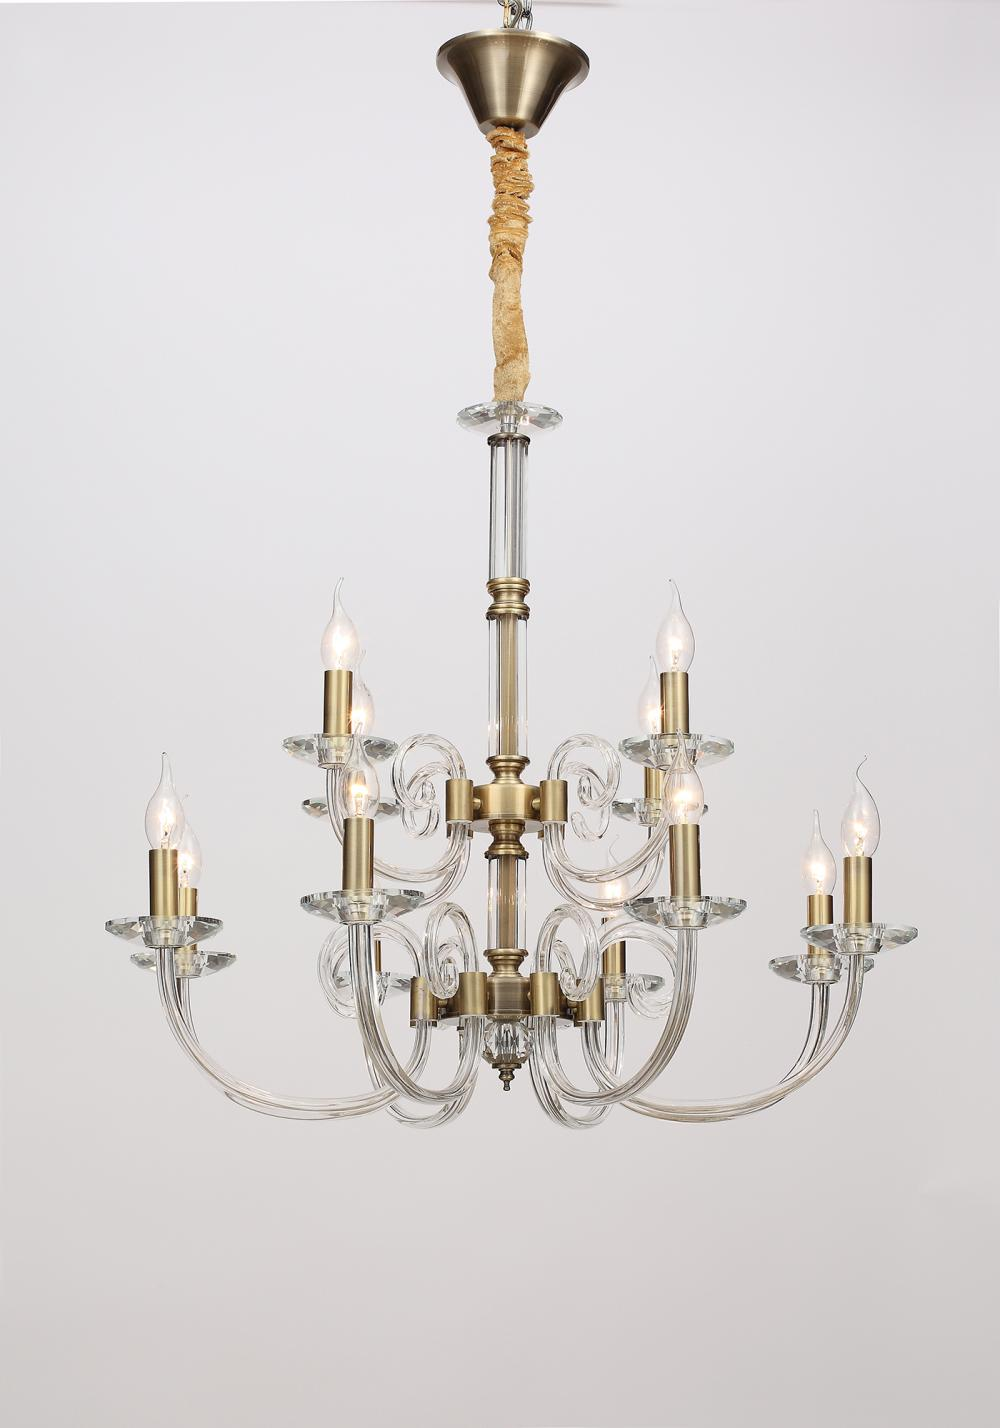 Iron Chandelier Lighting accessories